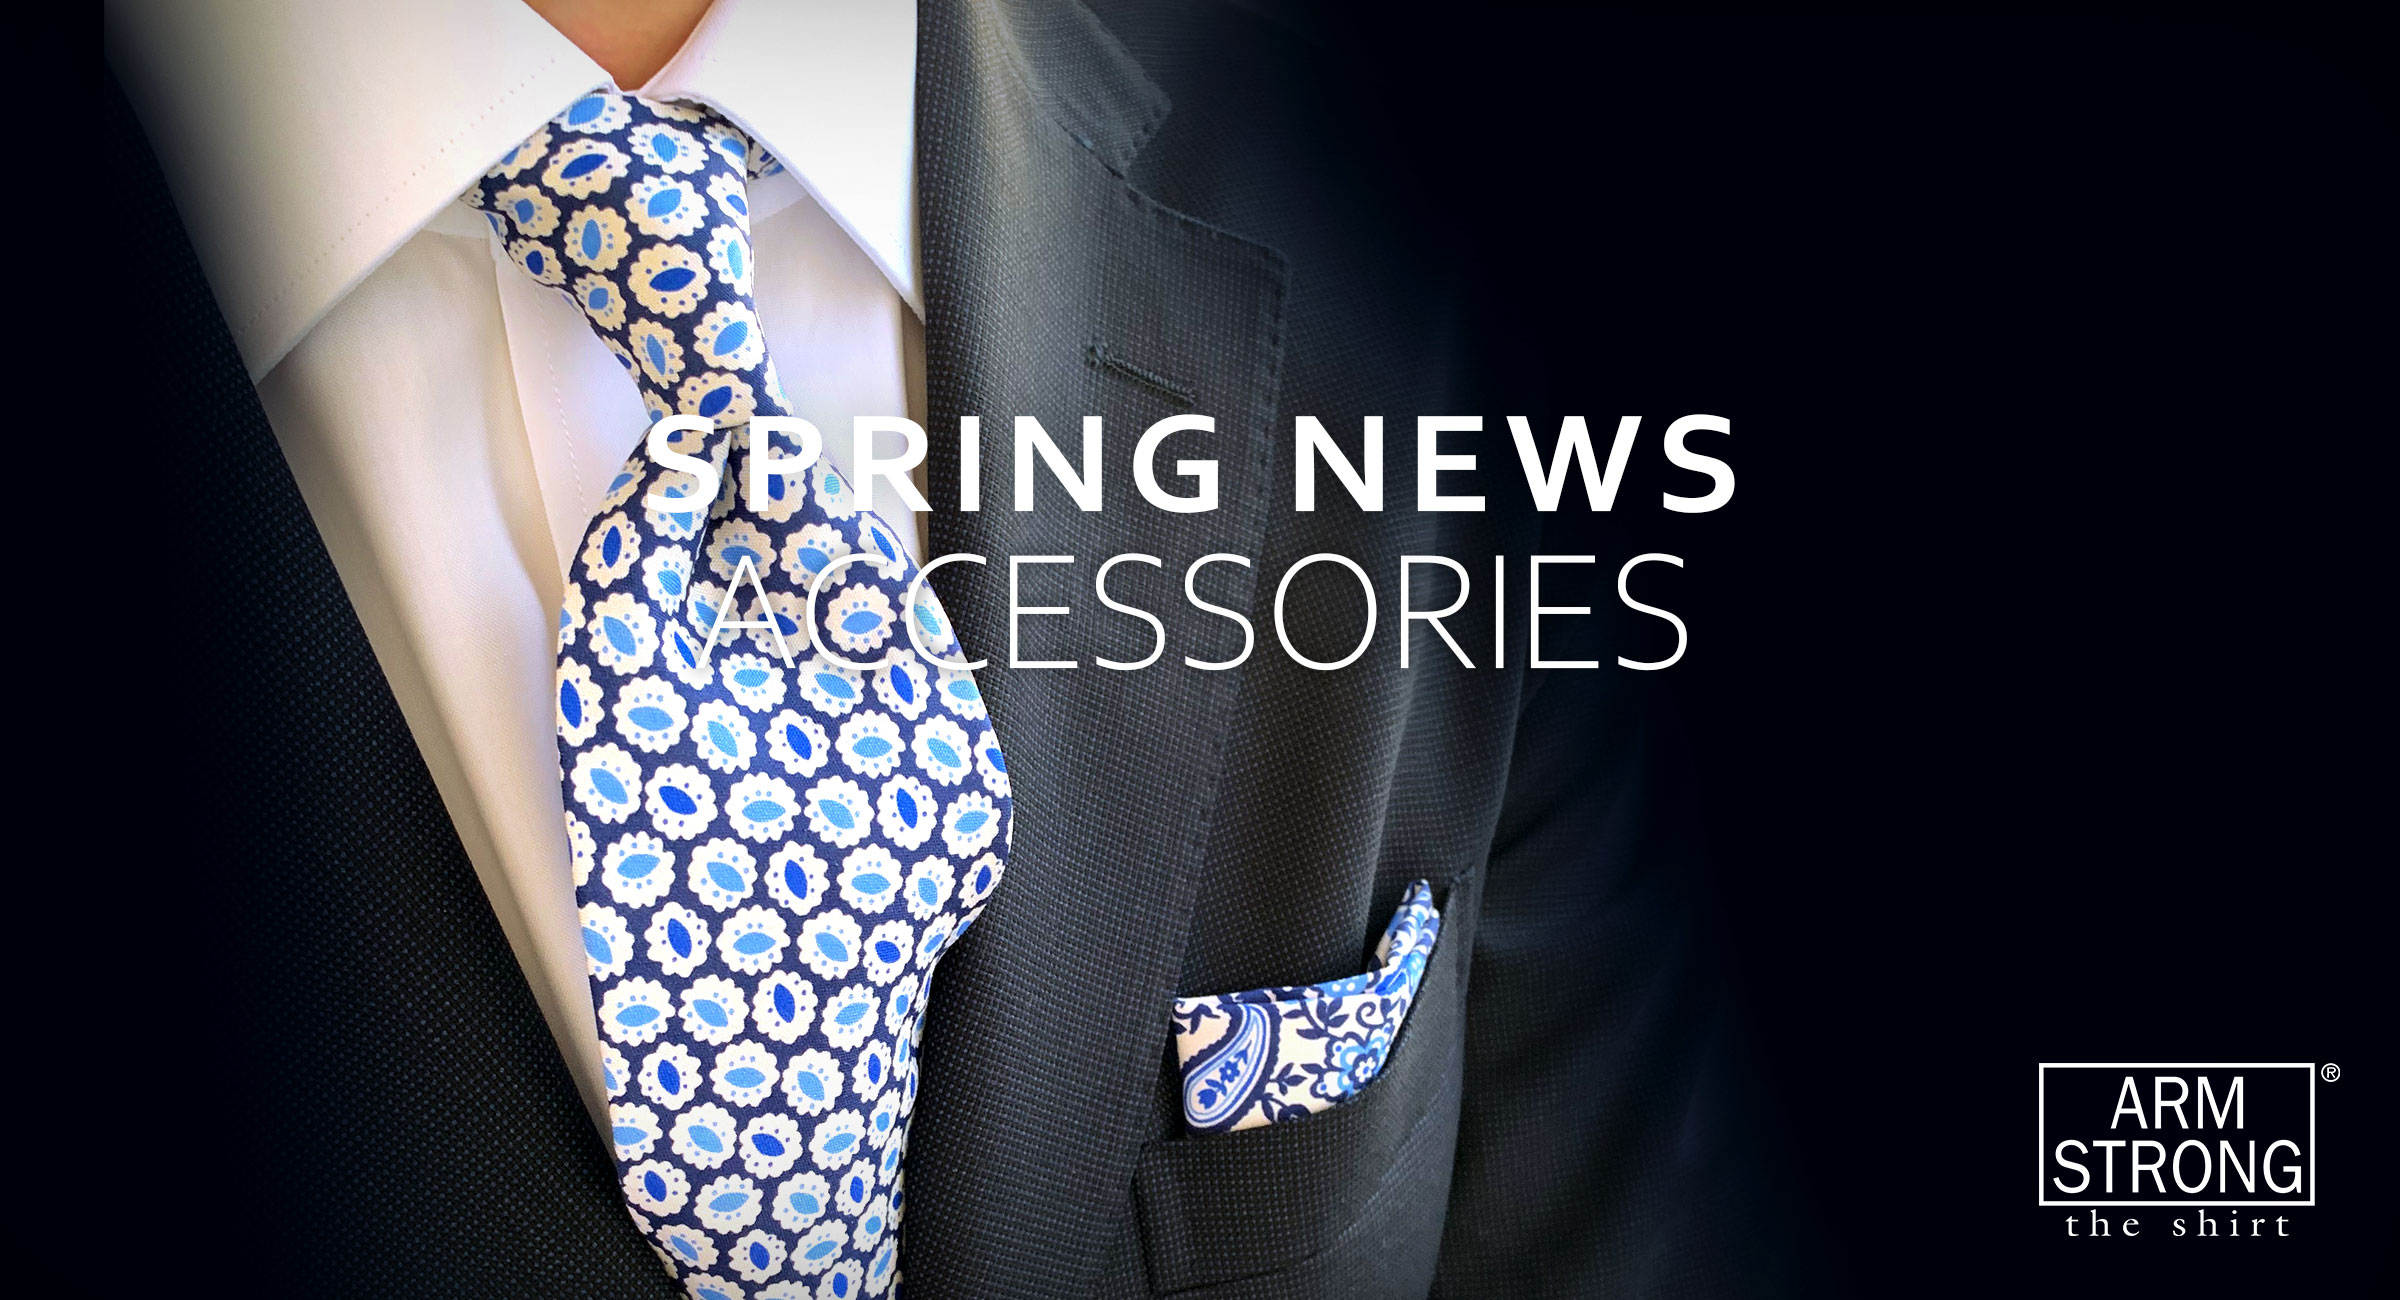 Spring News Accessories